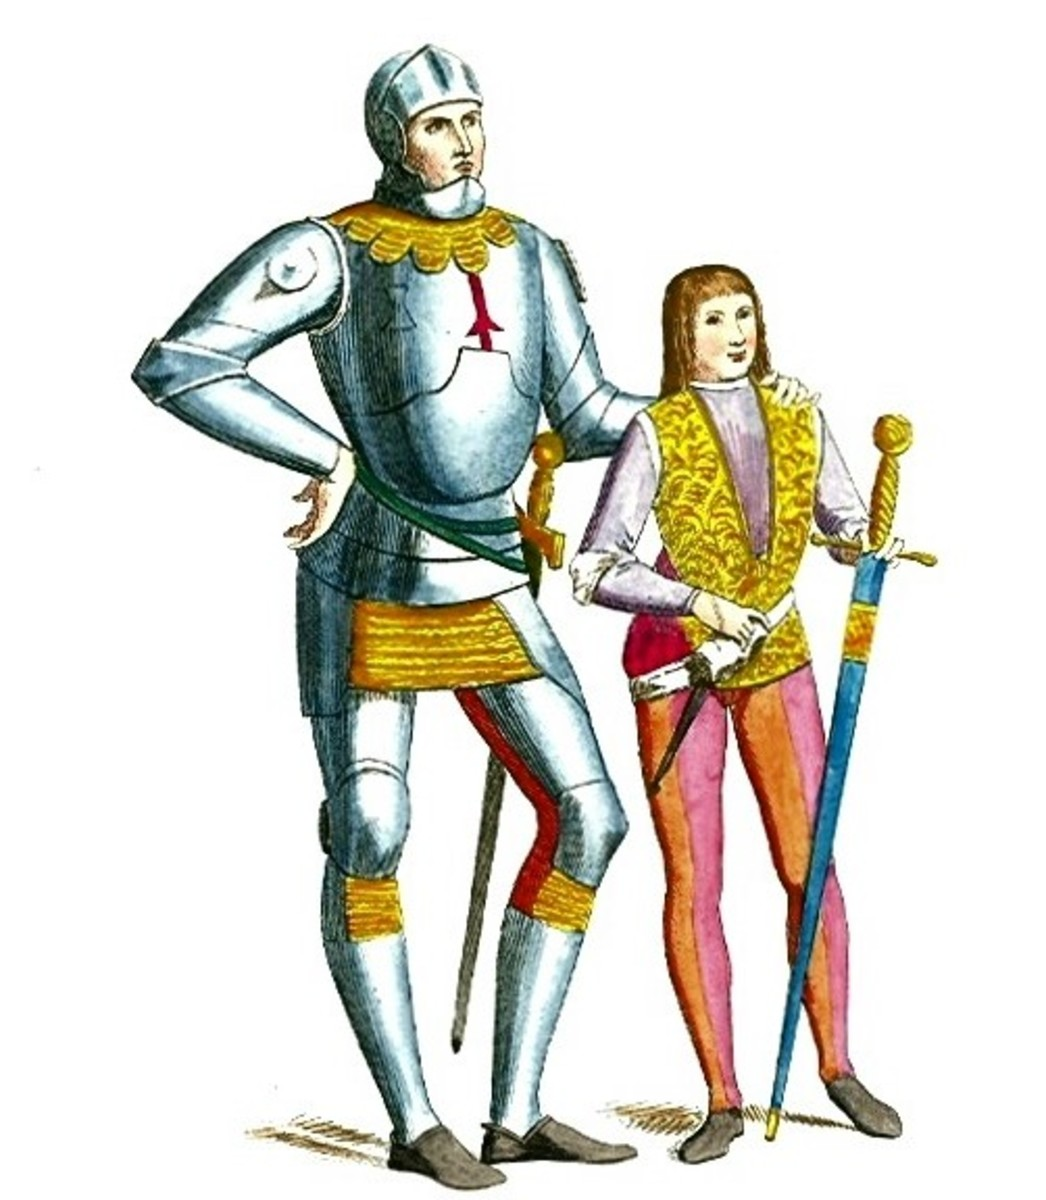 A picture of a knight with his squire.